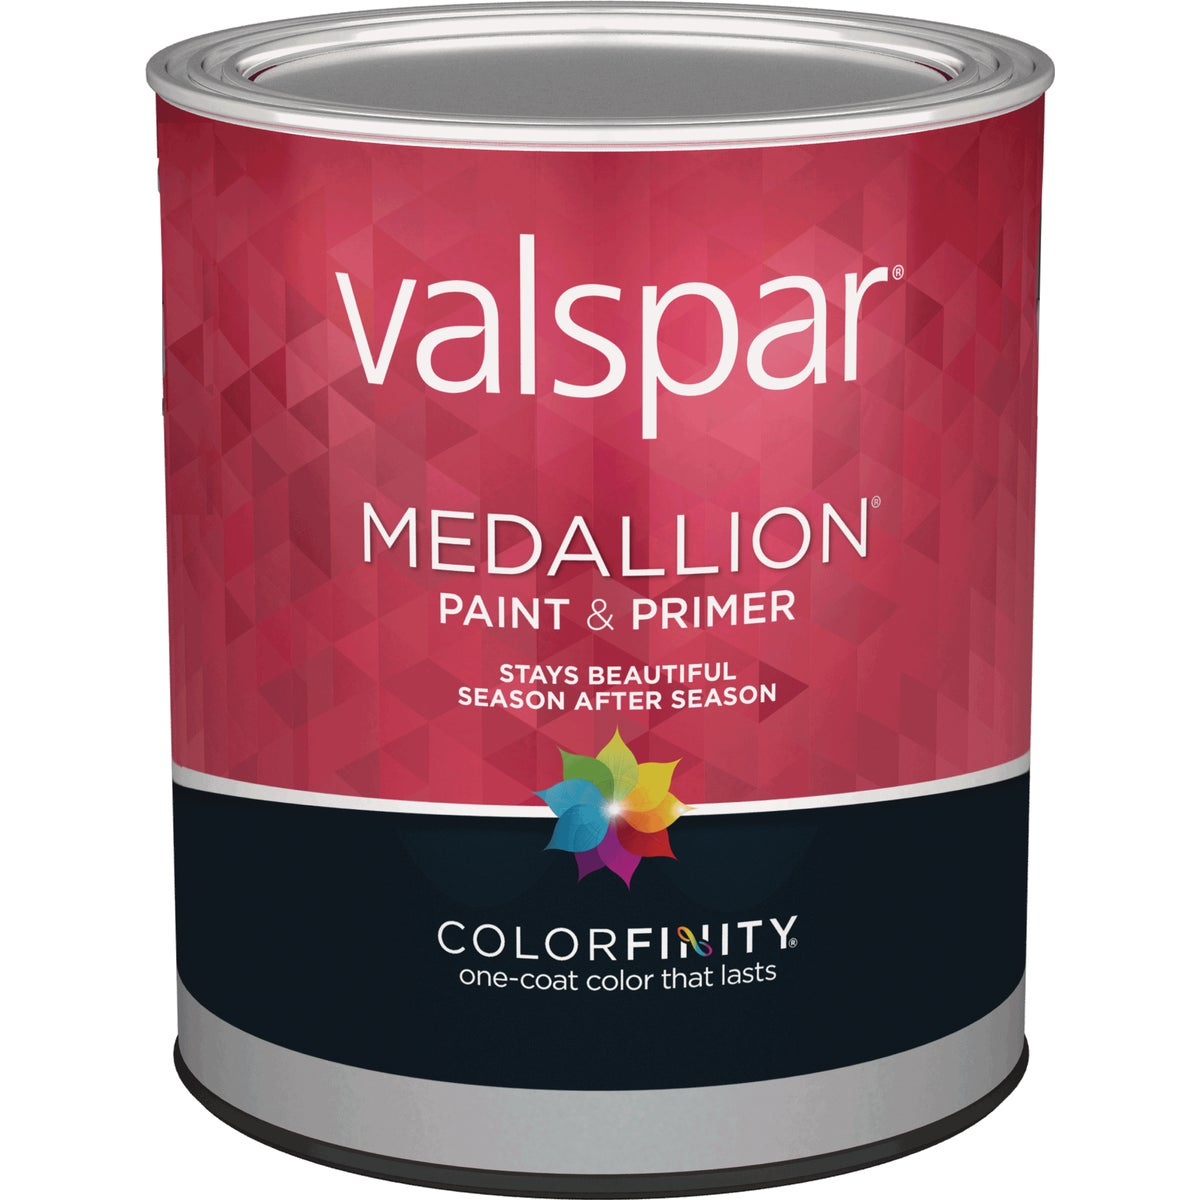 EXT S/G WHITE PAINT - 027.0004300.005 by Valspar Corp